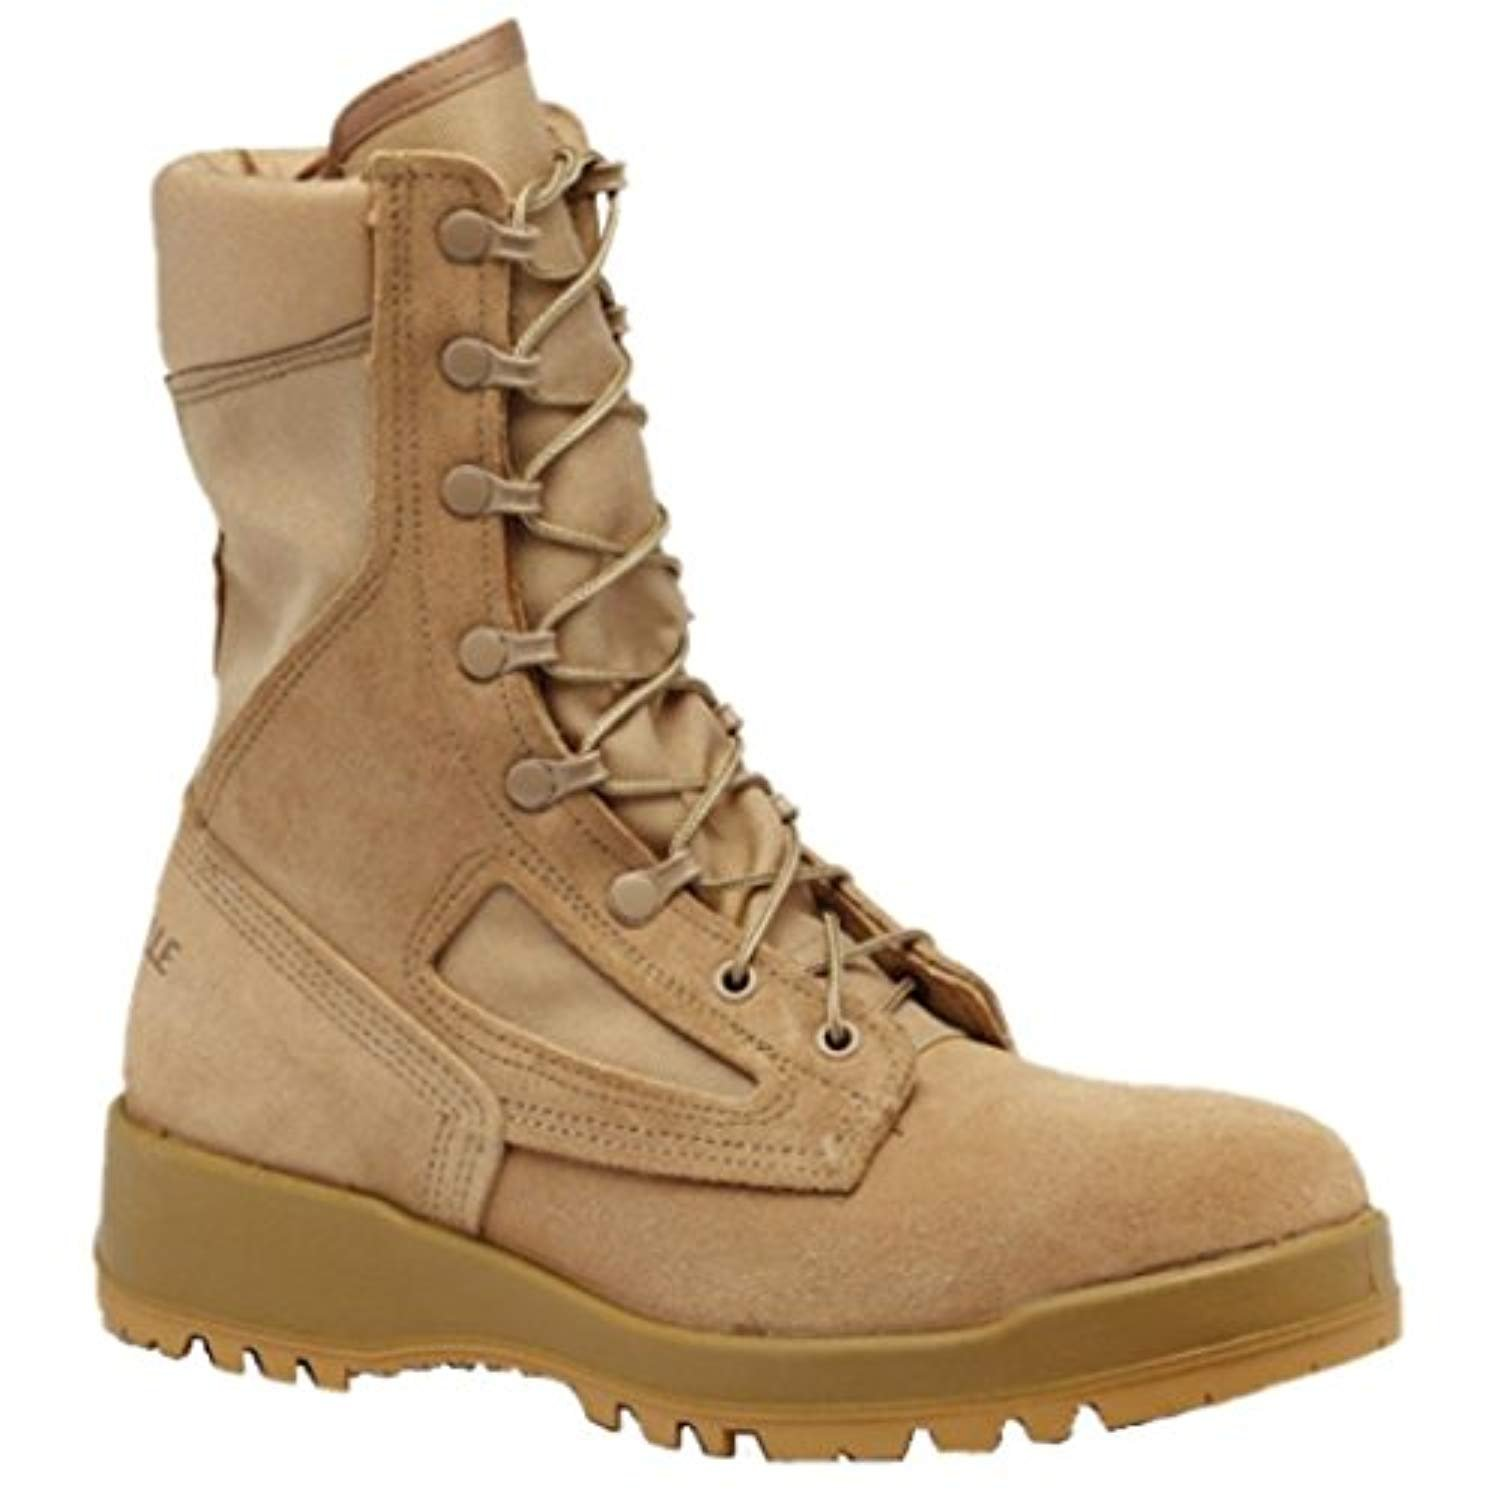 Belleville Womens Hot Weather Combat Boot /& Tactical Cap Tactical Bundle